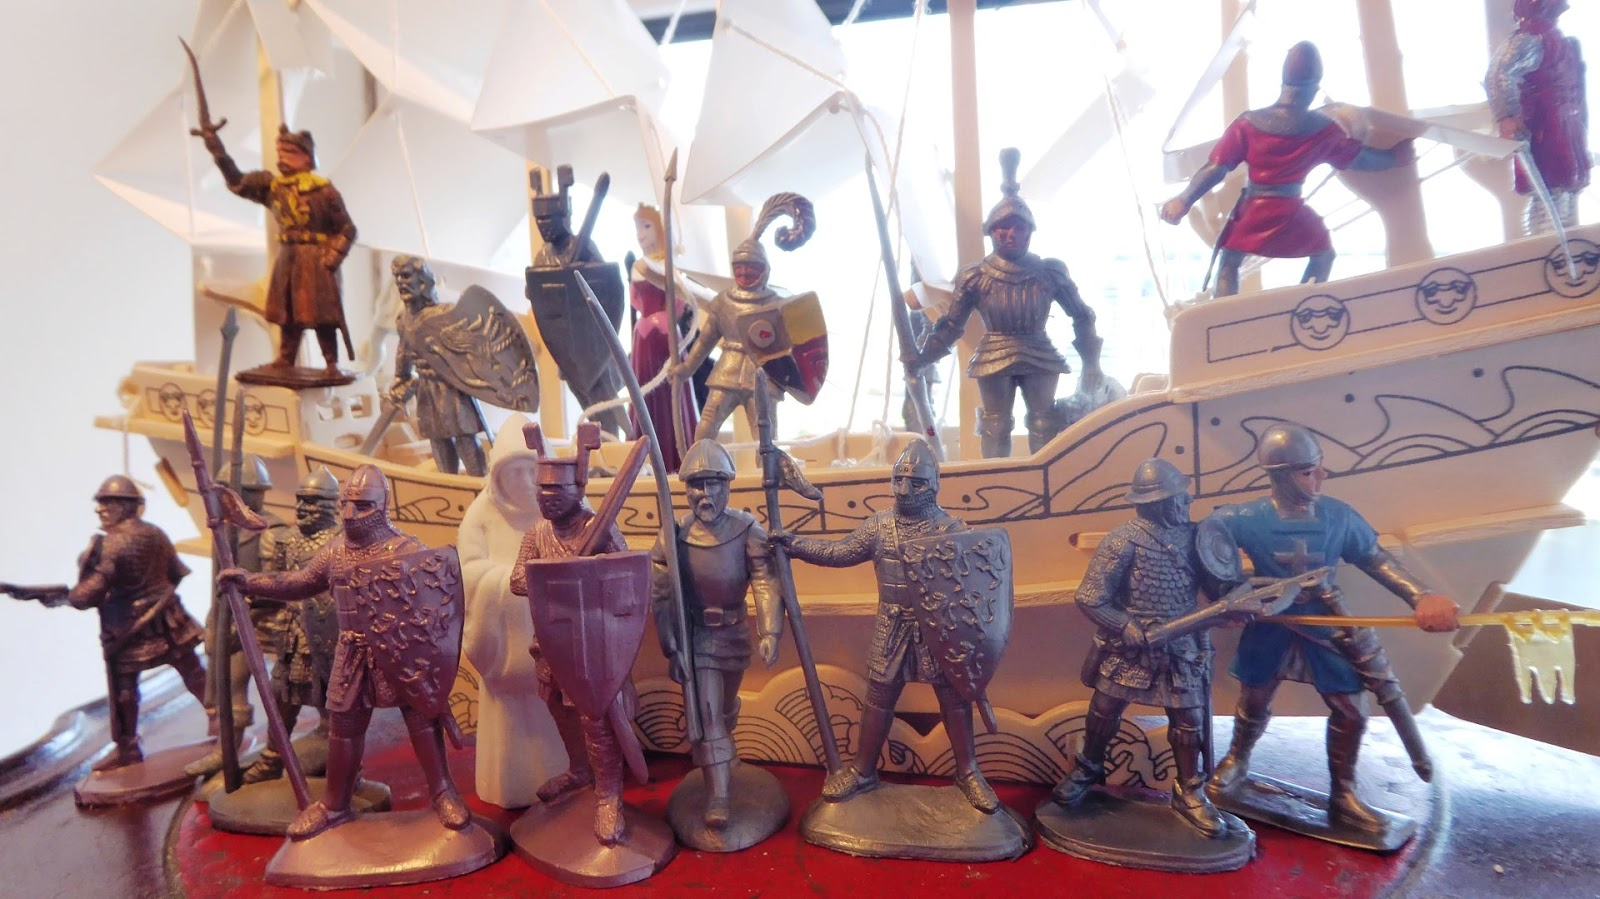 Toy soldiers and real battles: Departure of a Boat for the Crusades